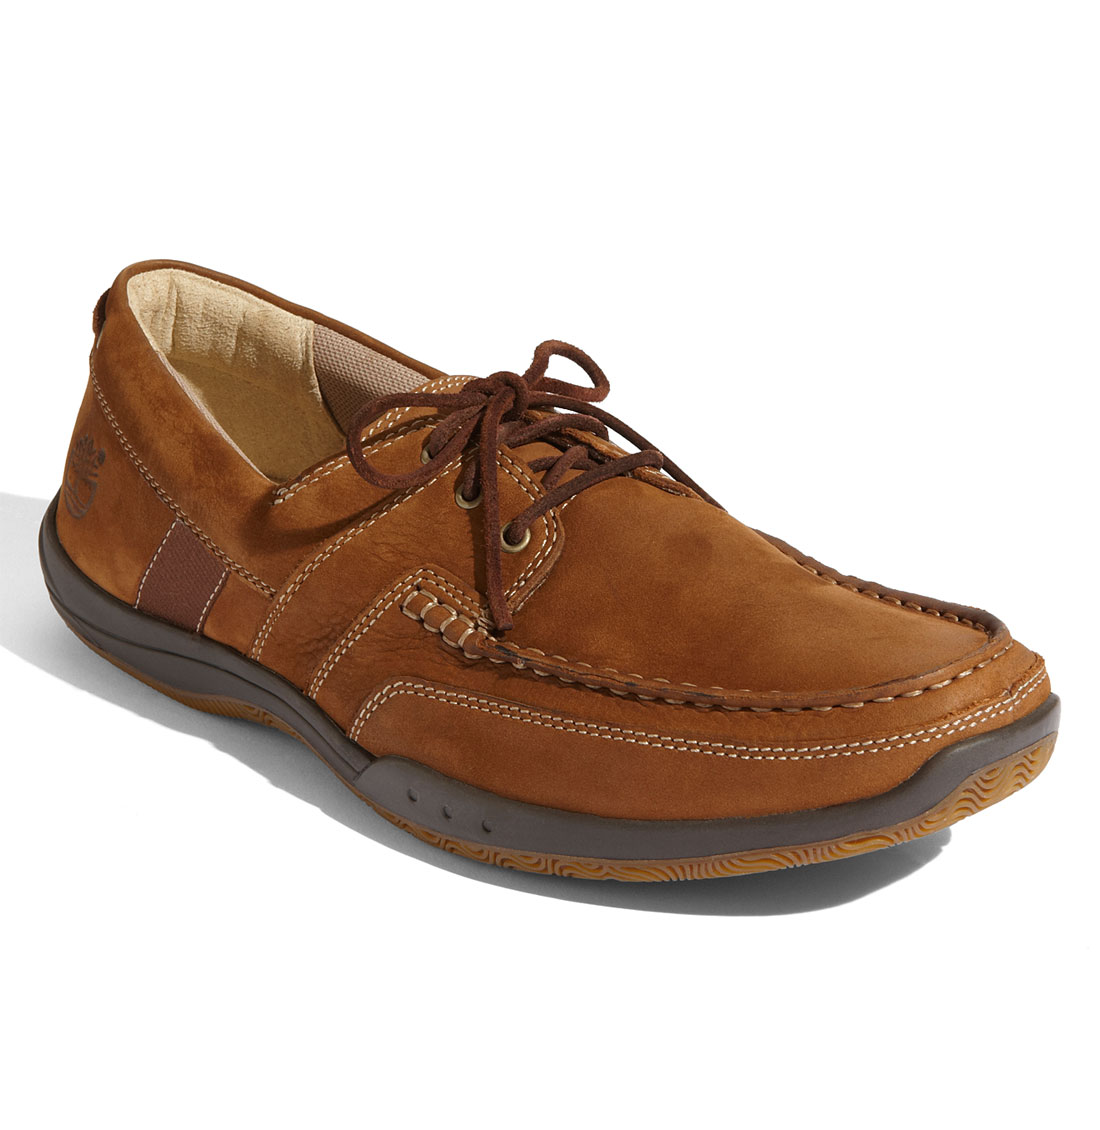 timberland earthkeepers cupsole boat shoe in brown for